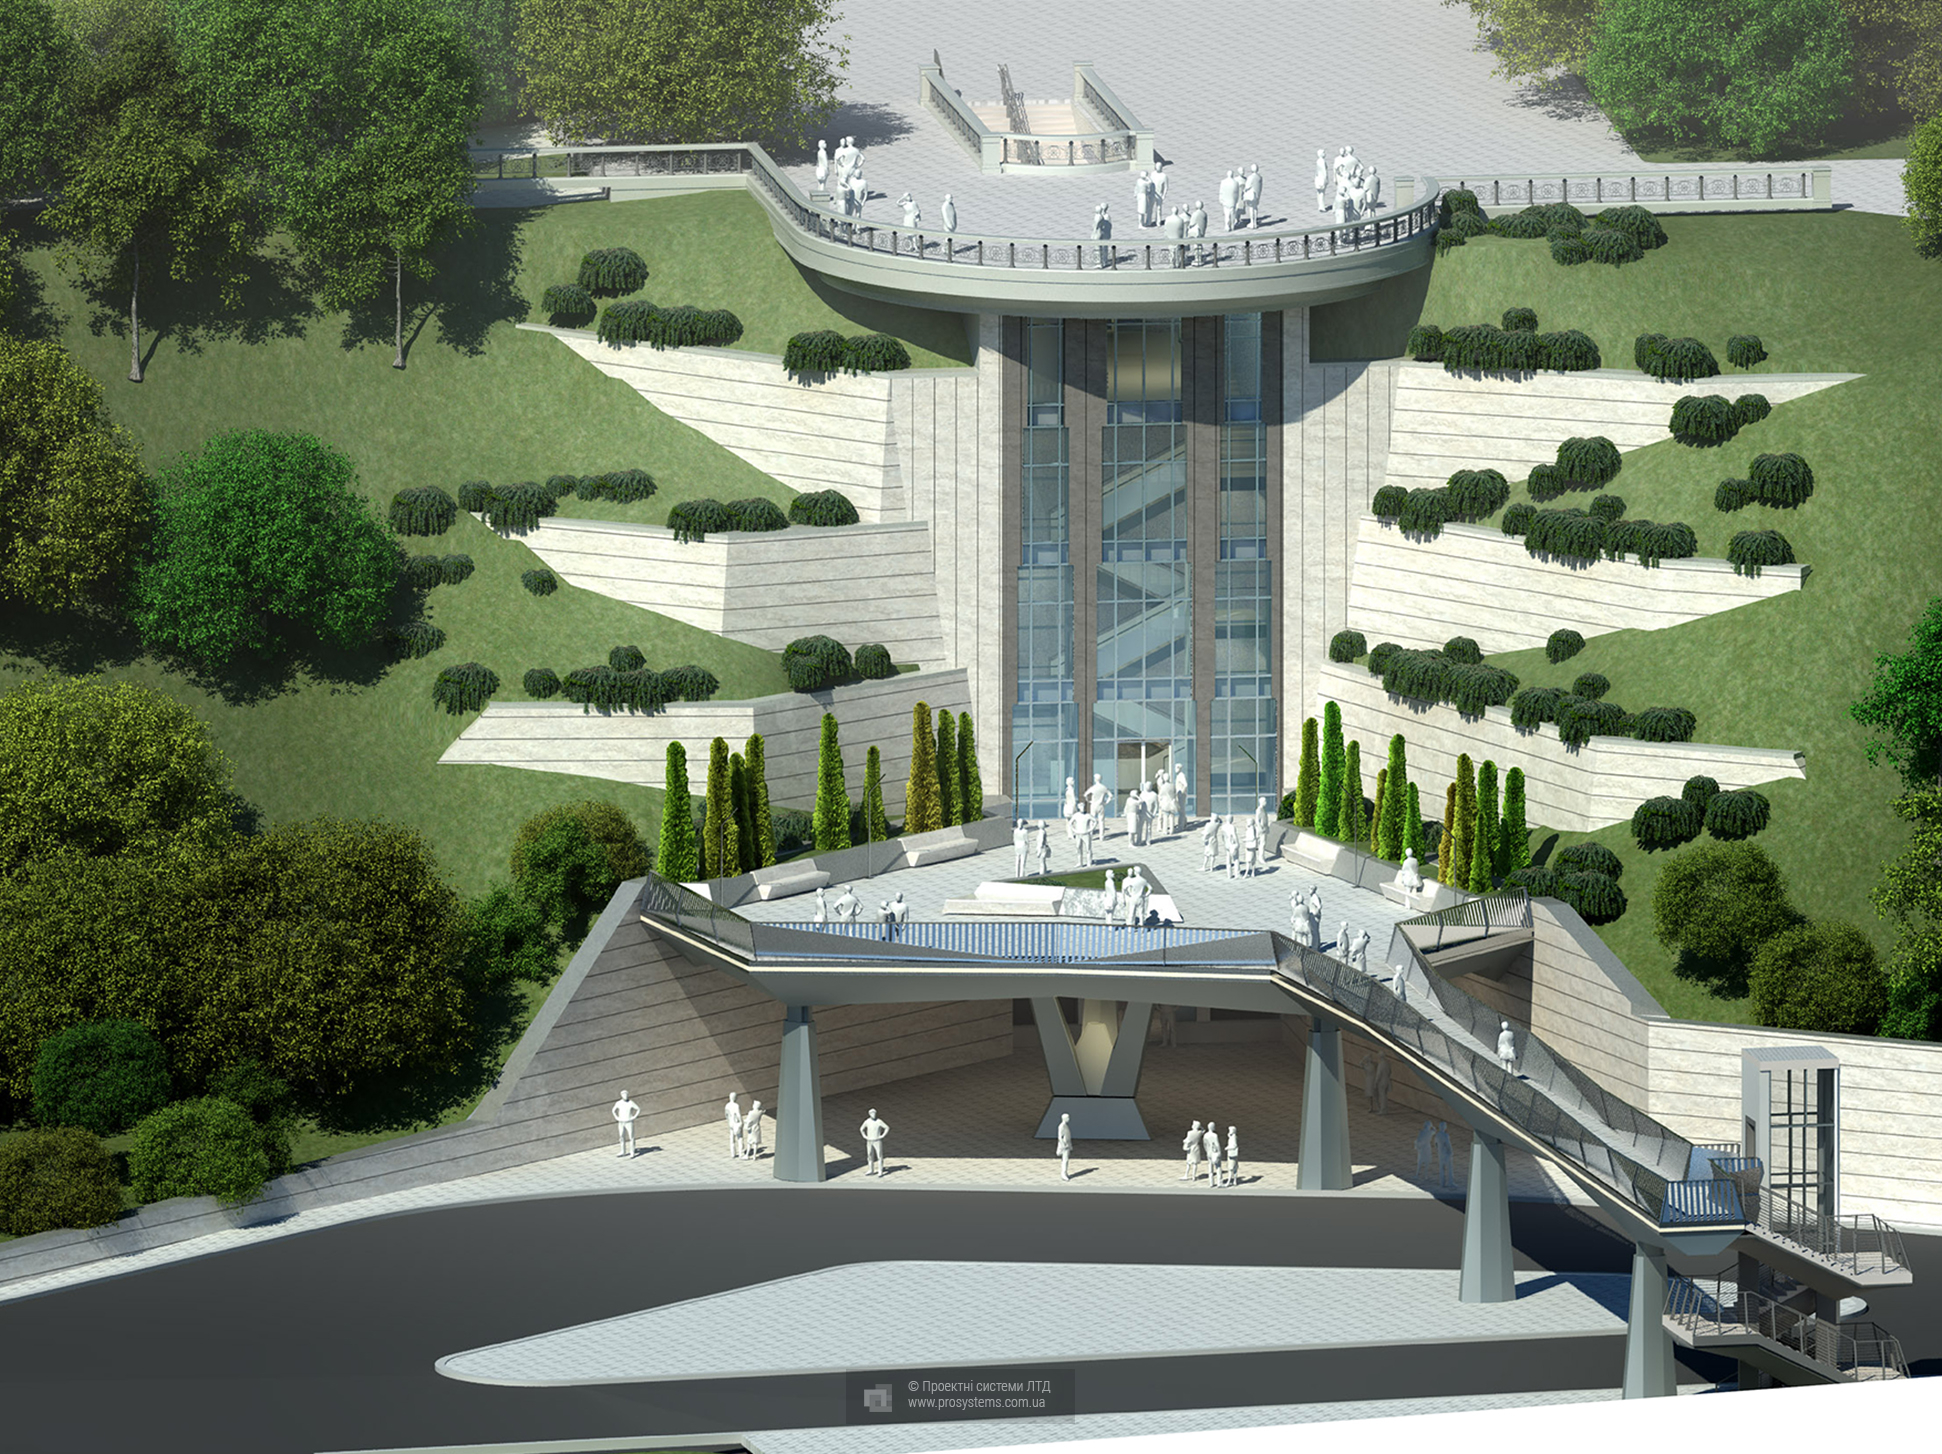 Reconstruction of the observation deck on the Parkova Rd